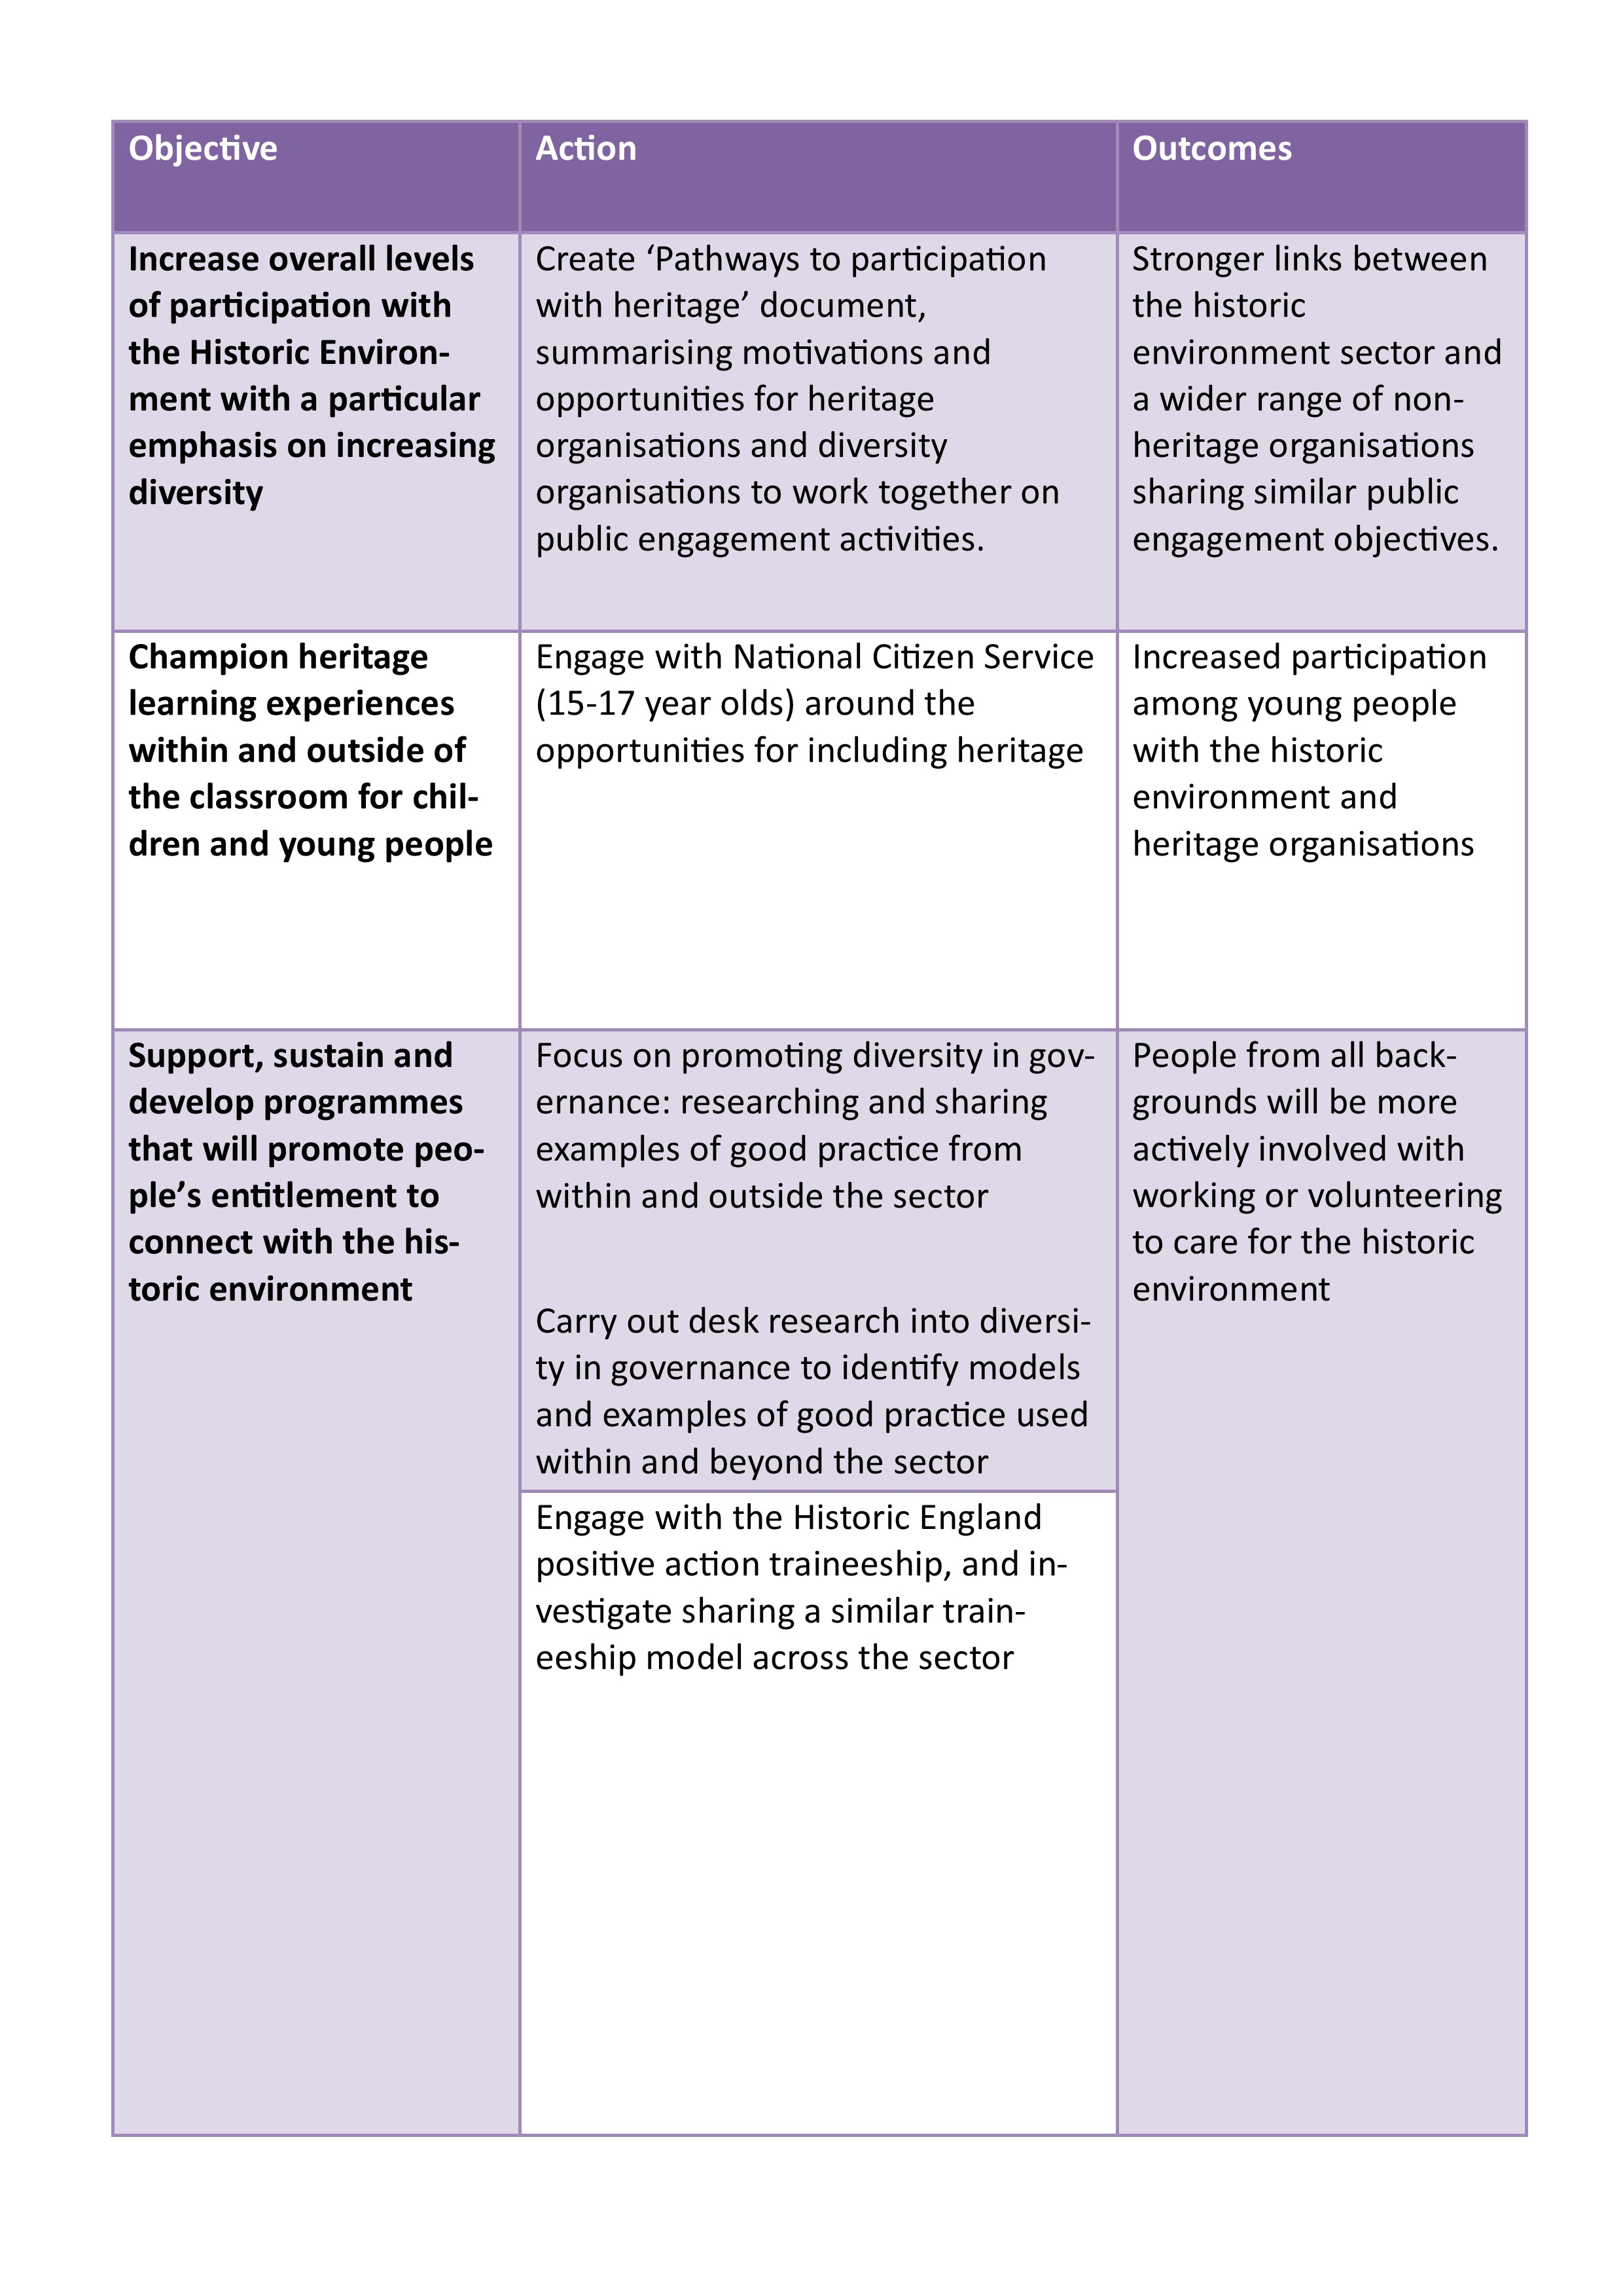 Table outlining current actions for the public engagement working group